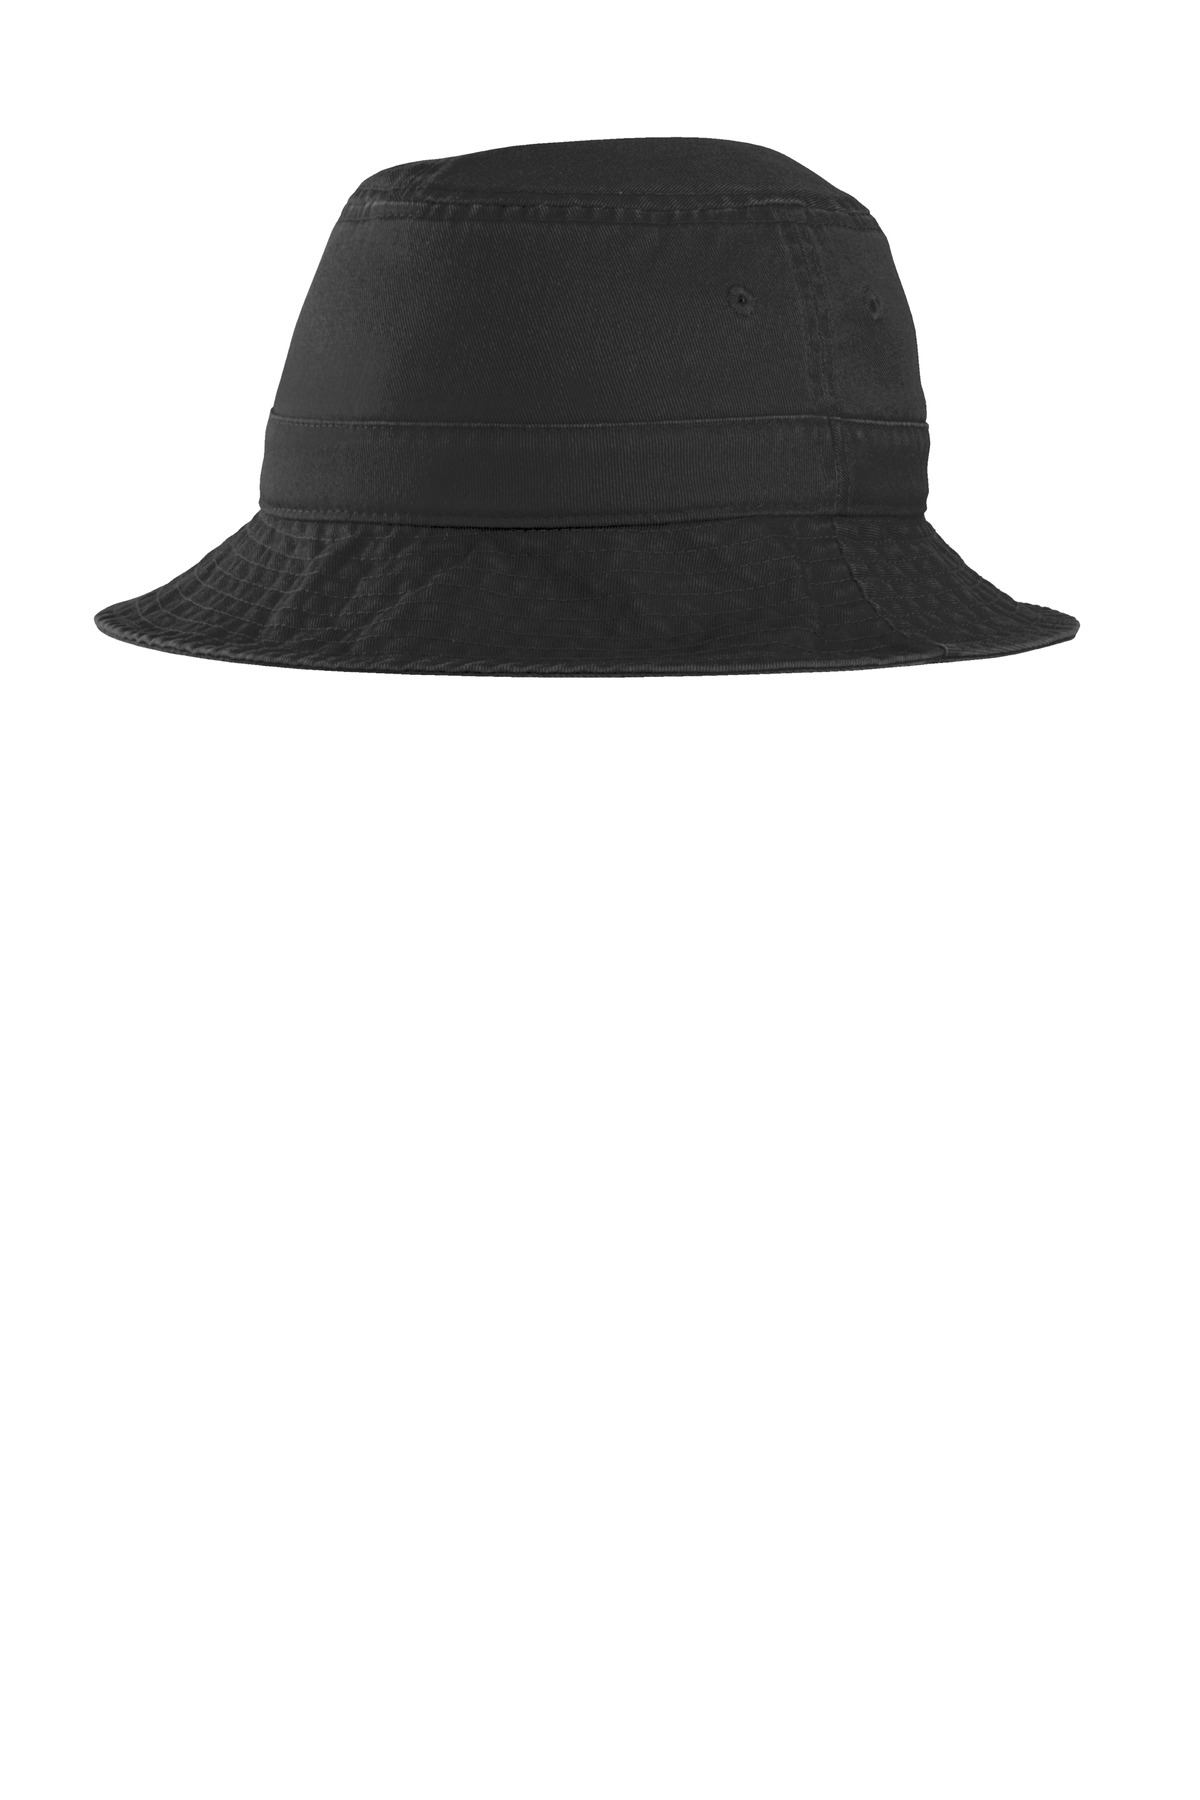 79d574902ab Buy Port Authority® Bucket Hat. - Port Authority Online at Best ...